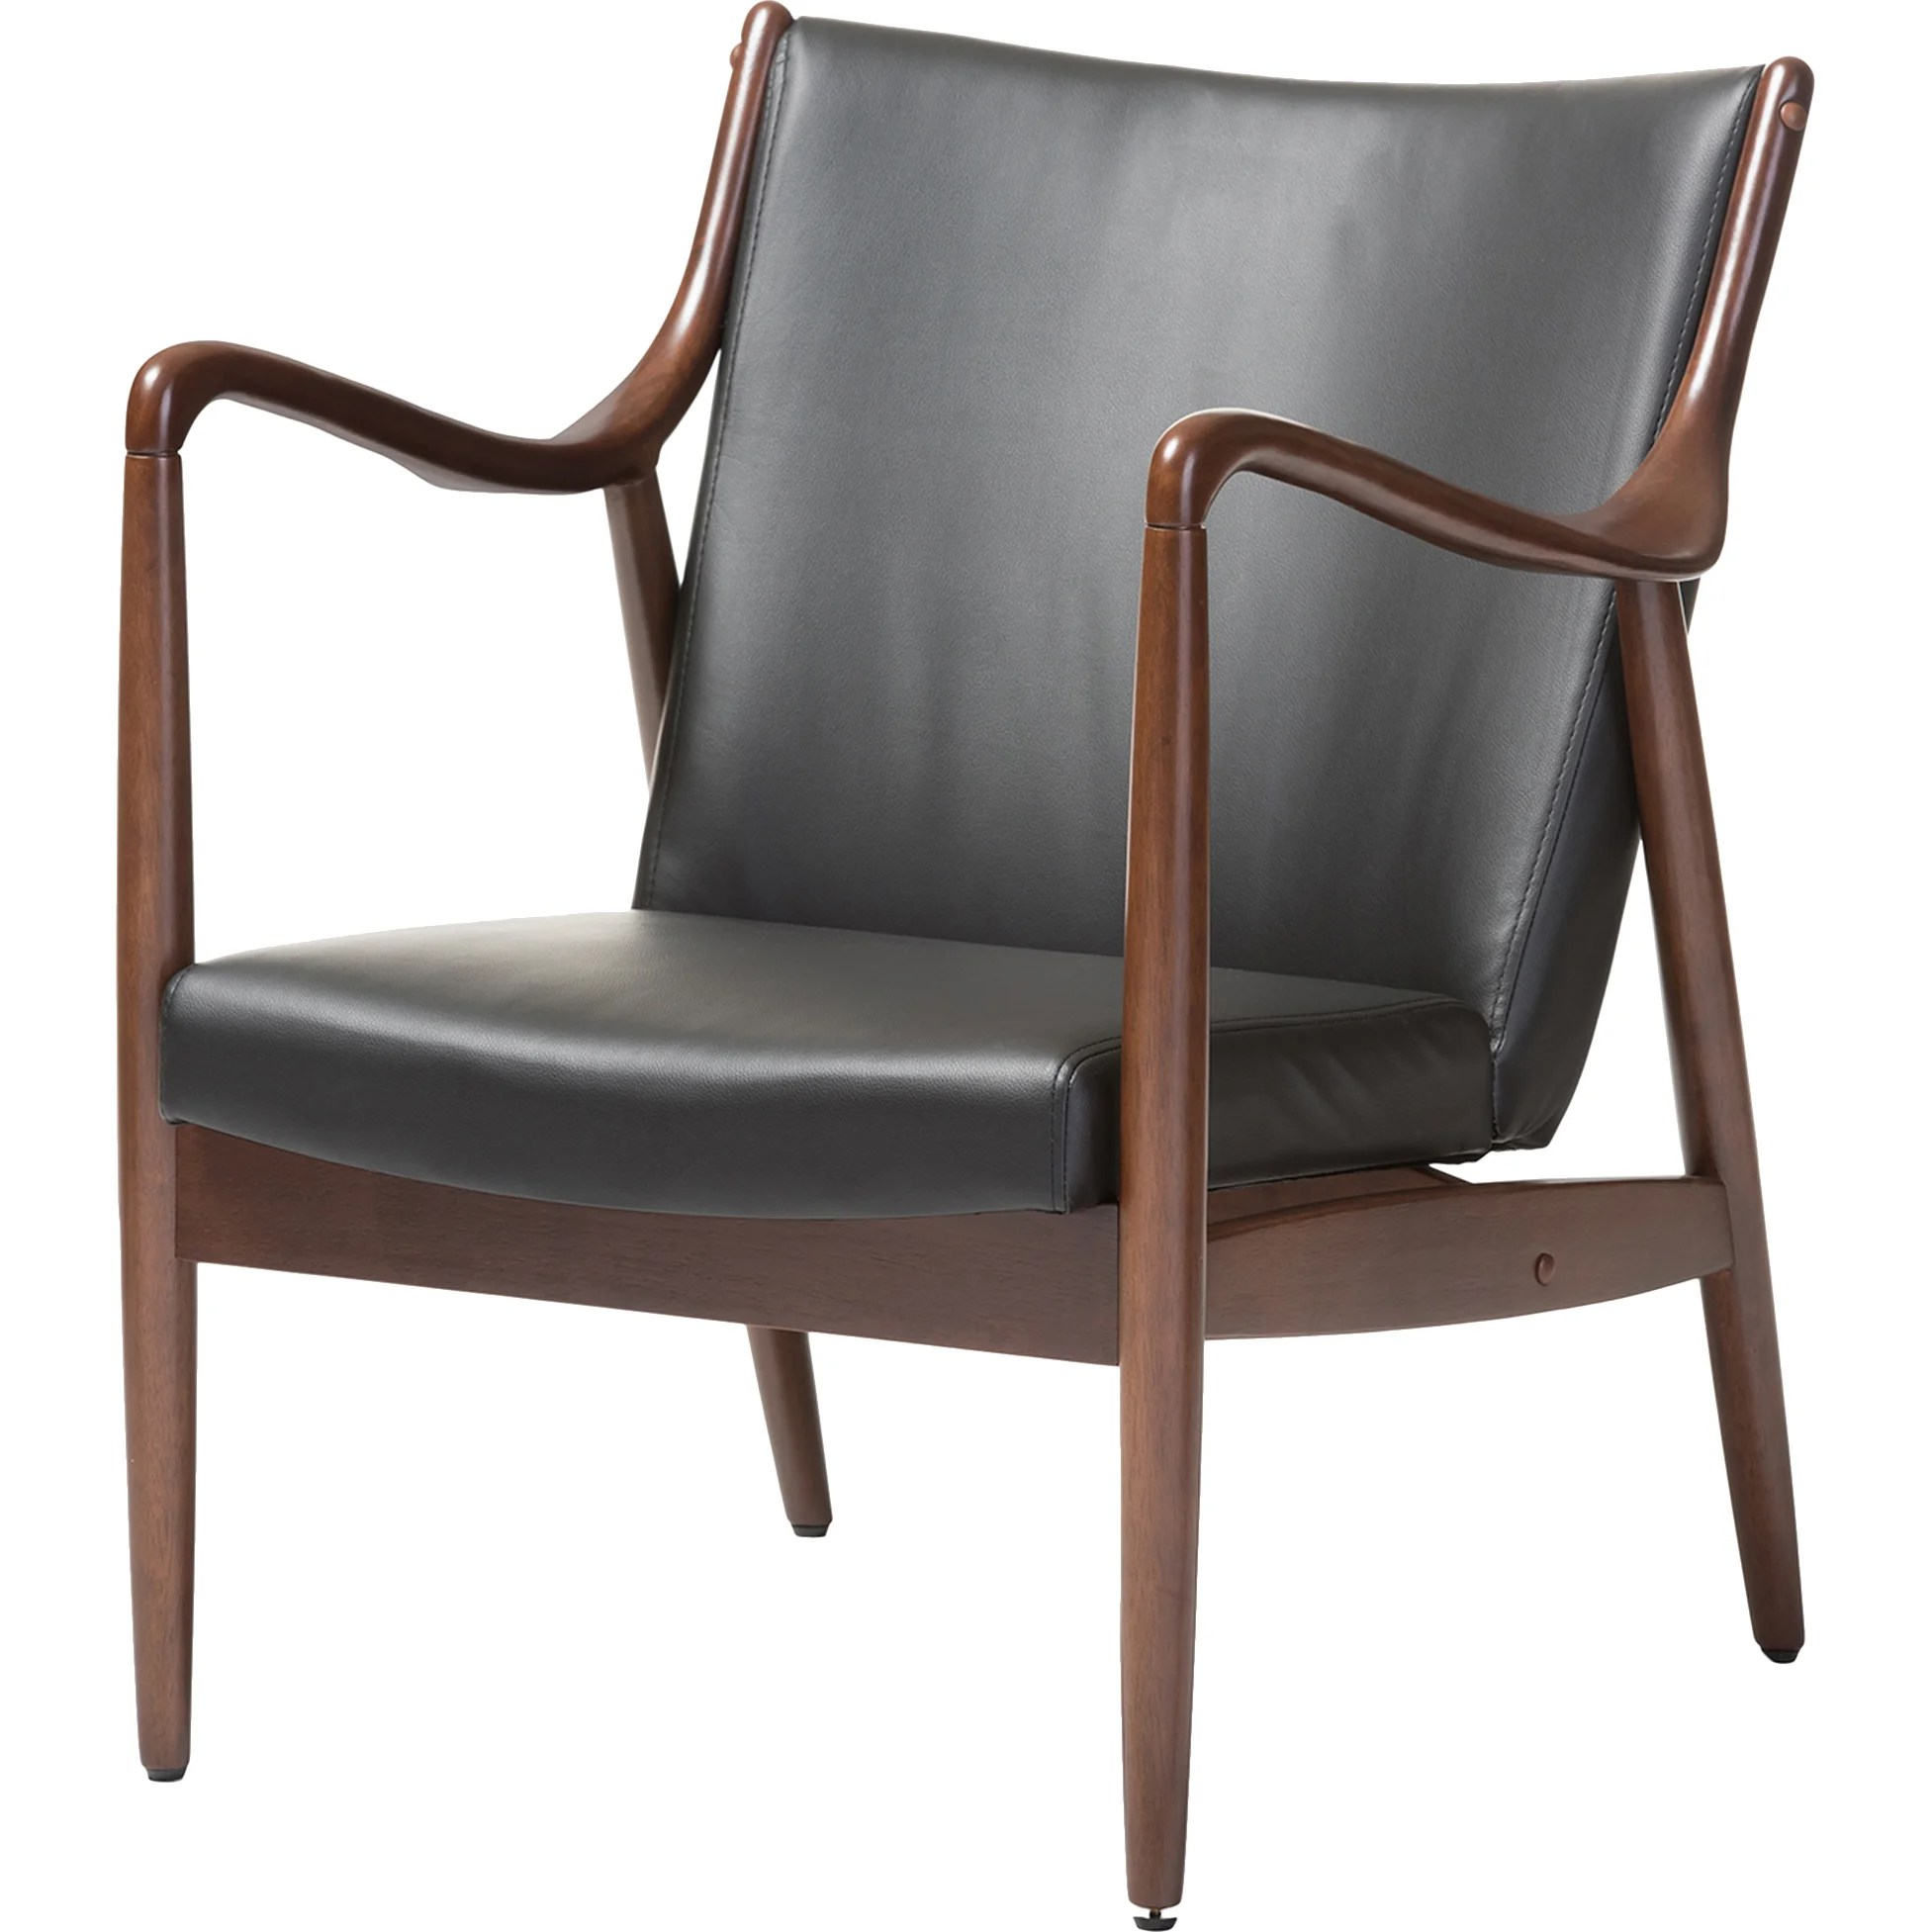 baxton studio modern leather accent chair wedding chairs wholesale interiors shakespeare leisure